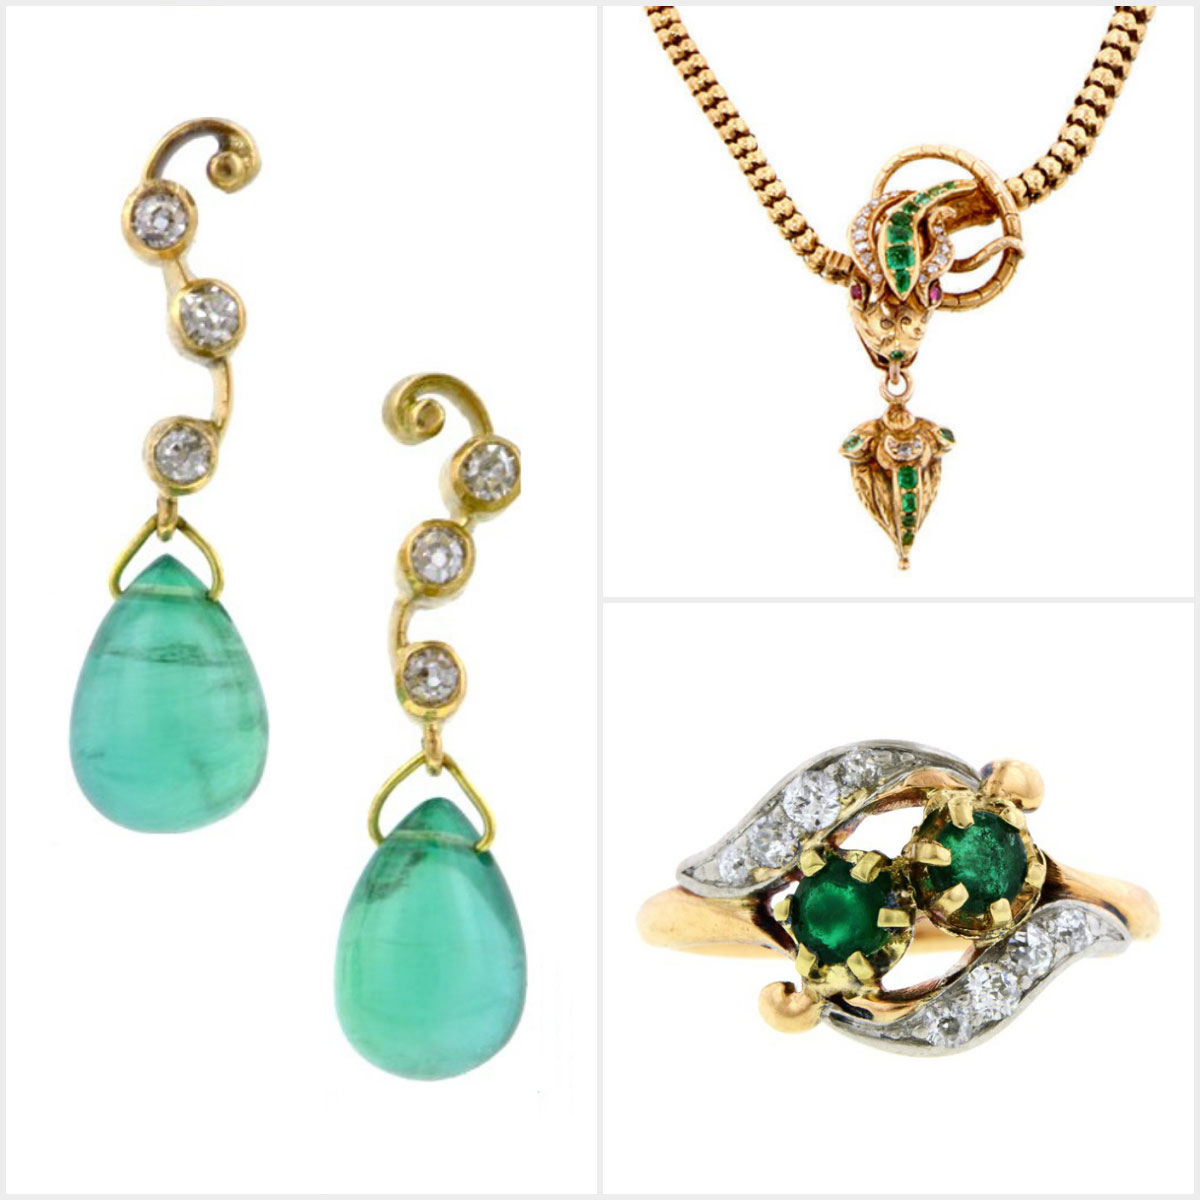 Doyle & Doyle antique gold emerald diamond jewelry